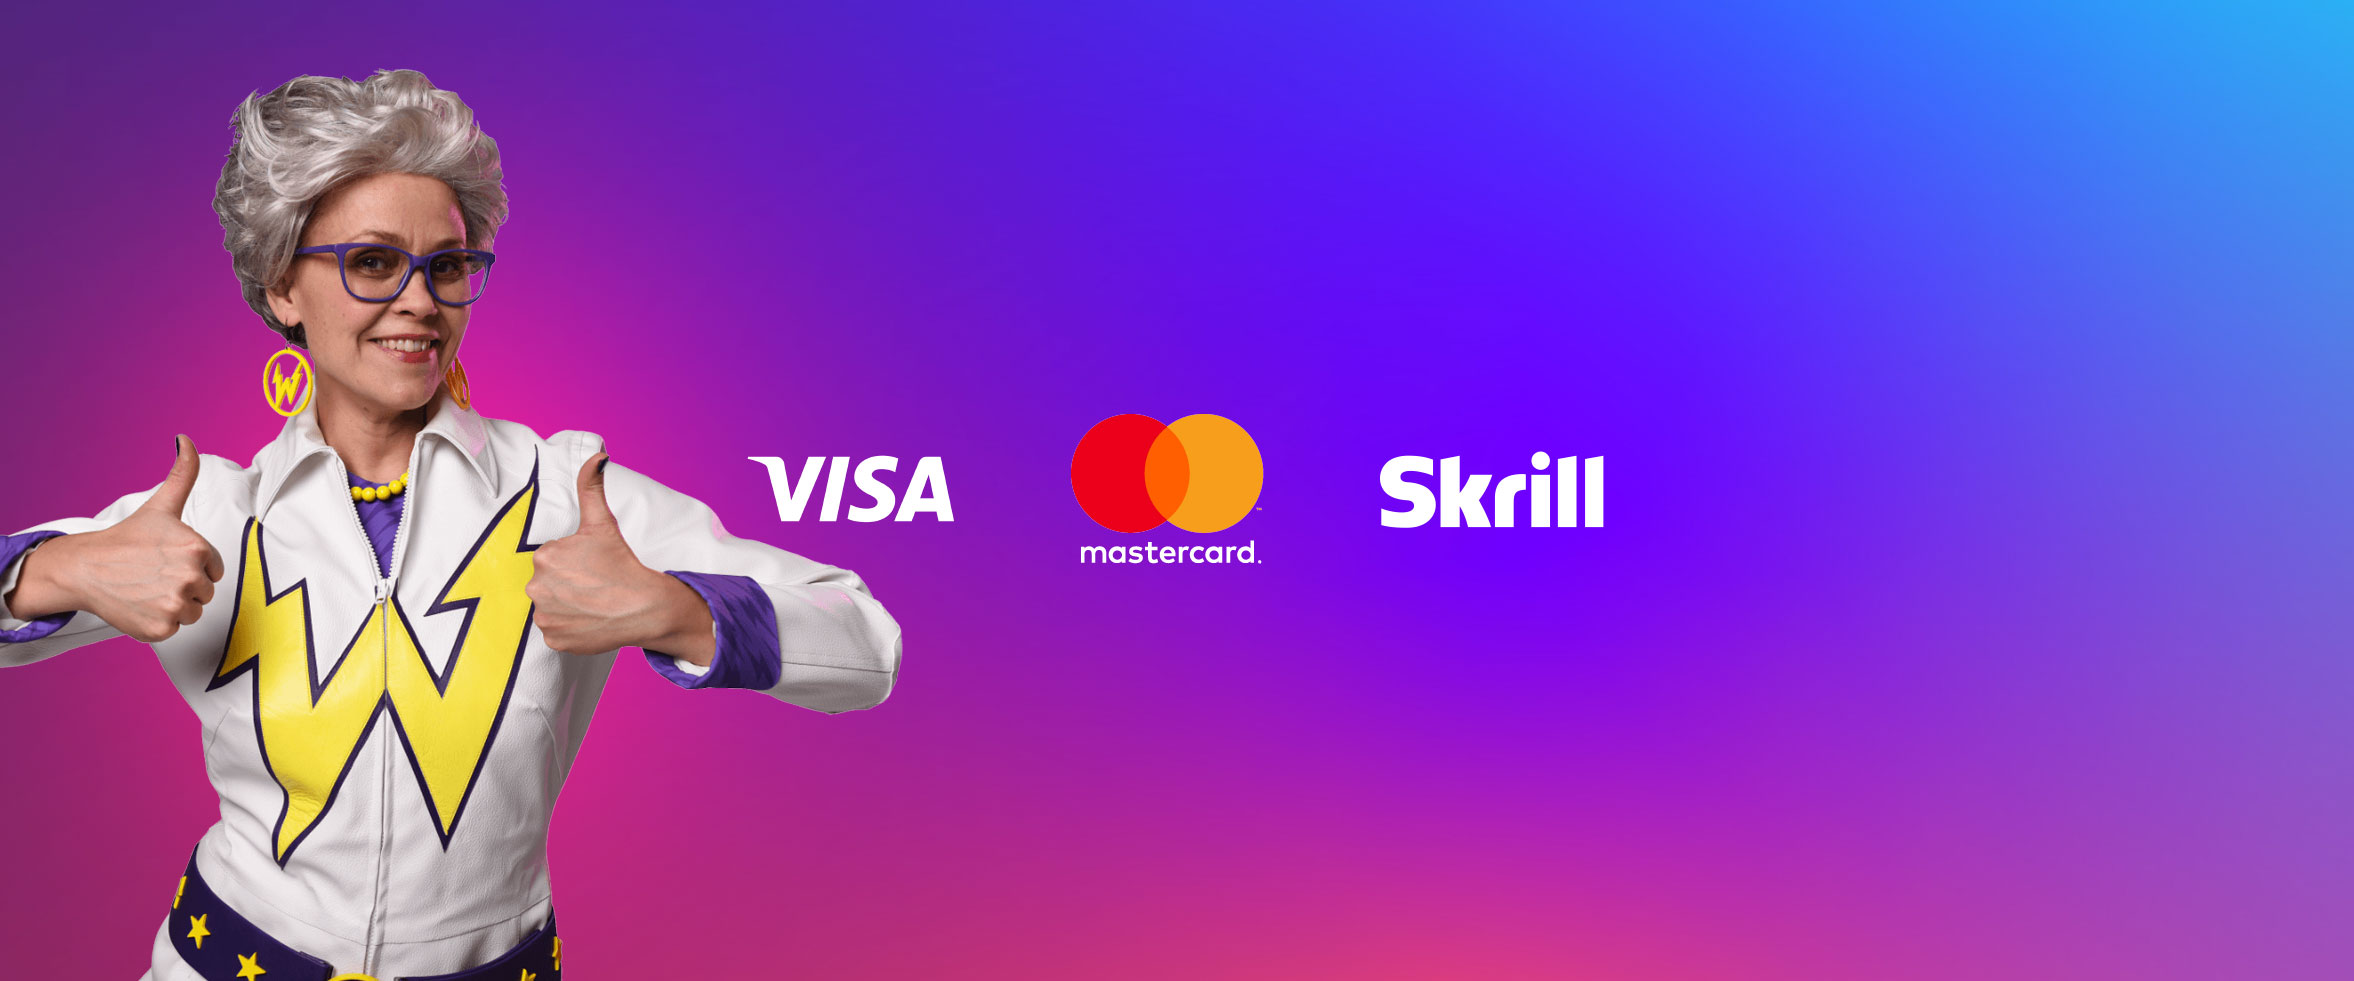 India: Deposit With Credit Cards, Withdraw With Skrill